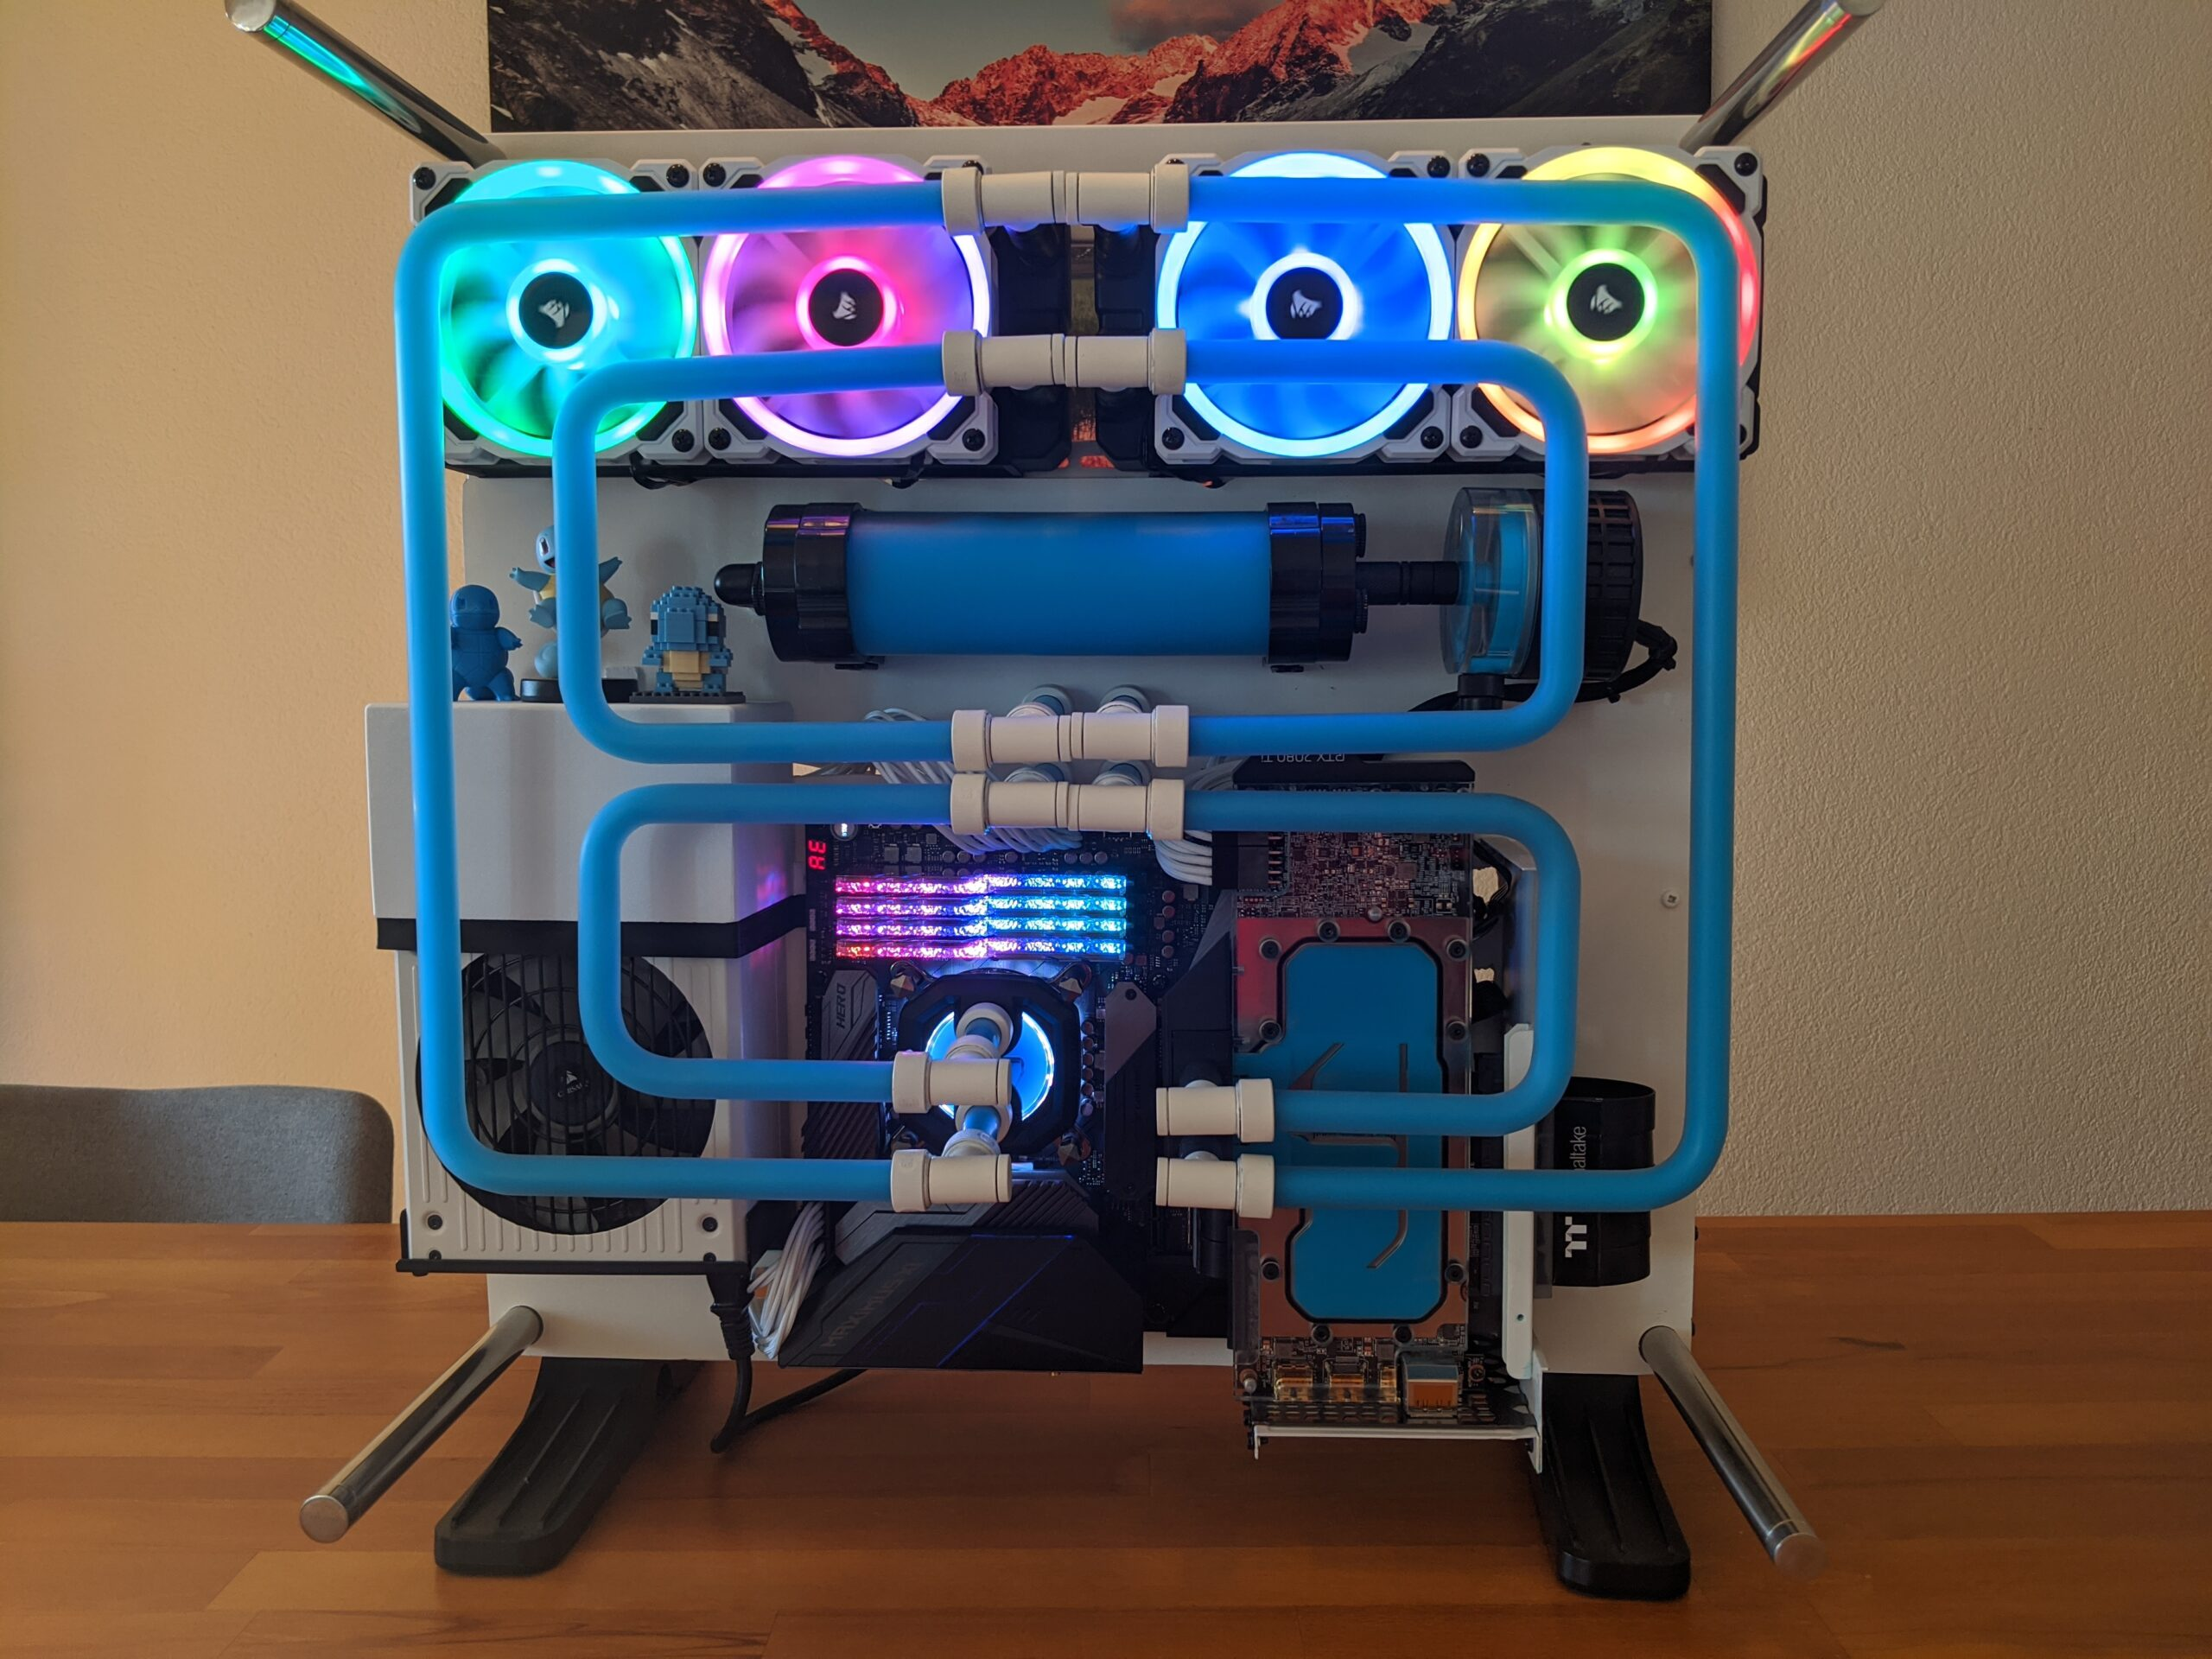 Squirtle Gaming PC